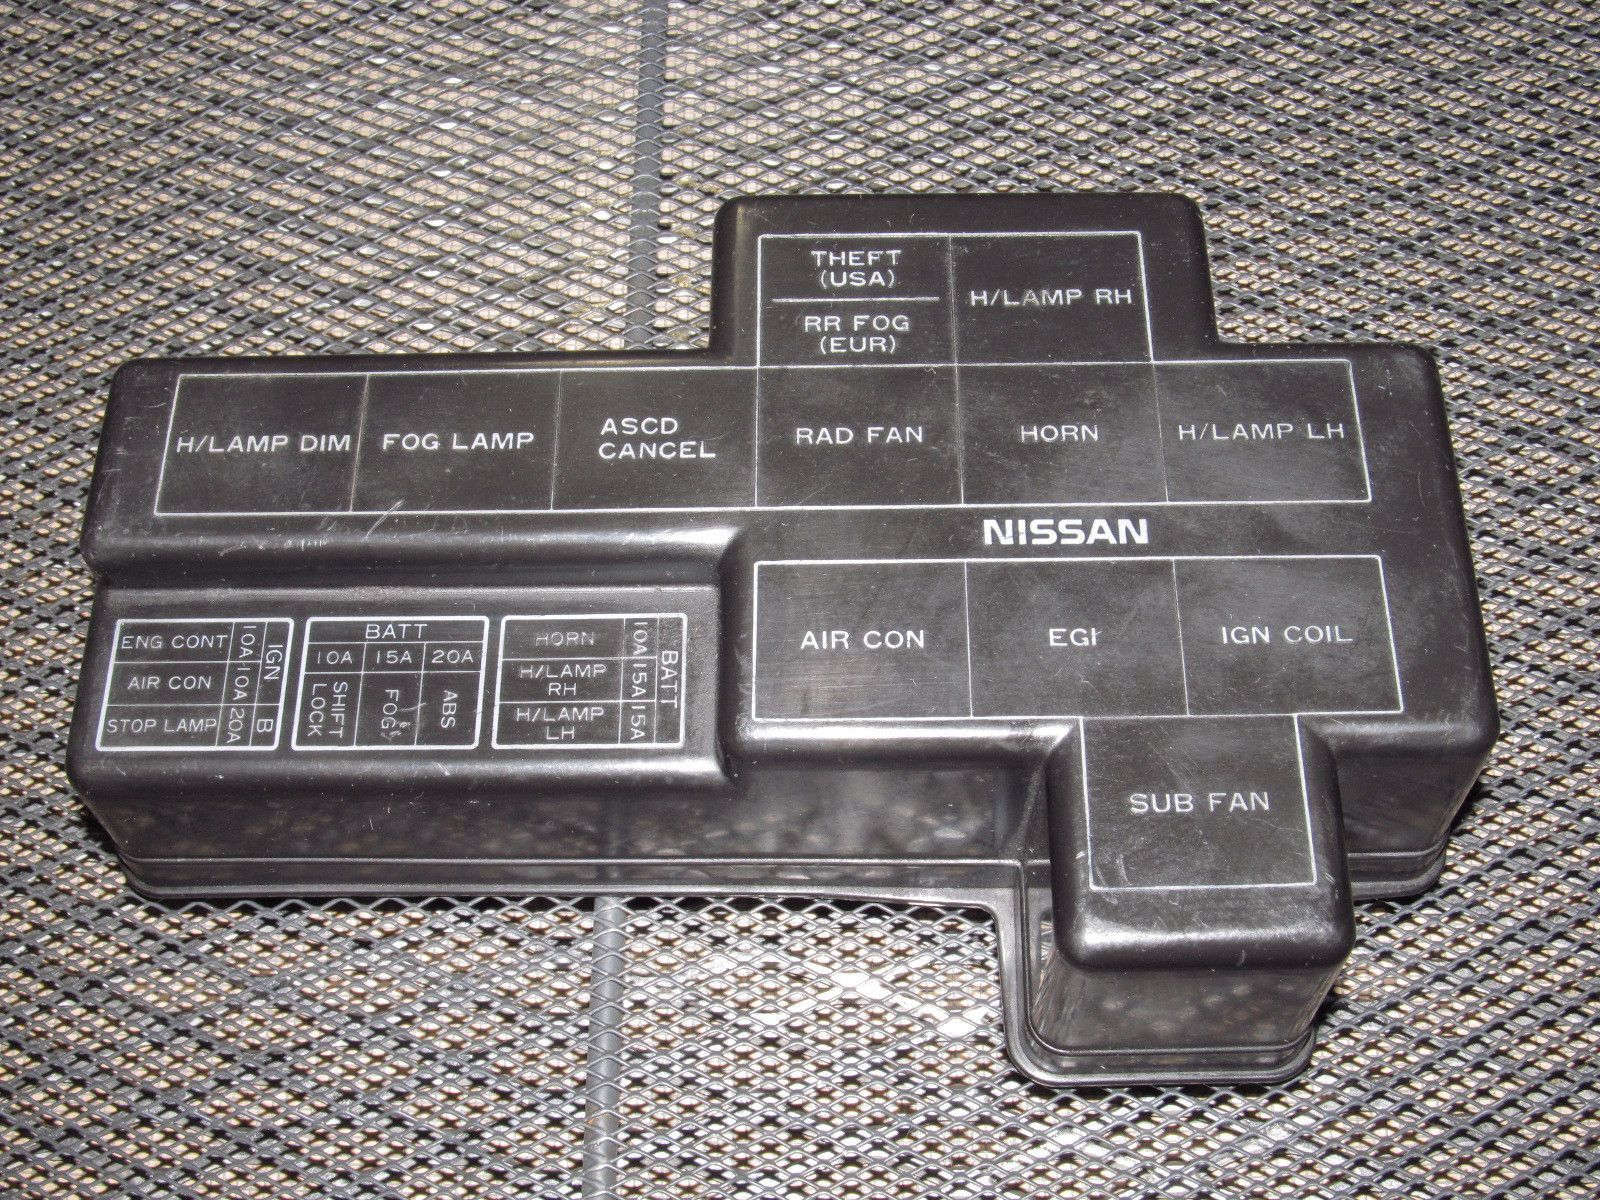 61e5bad3e8d38b9e36a270242c52ae3b 90 96 nissan 300zx oem engine fuse box cover nissan 300zx and ba fuse box at reclaimingppi.co